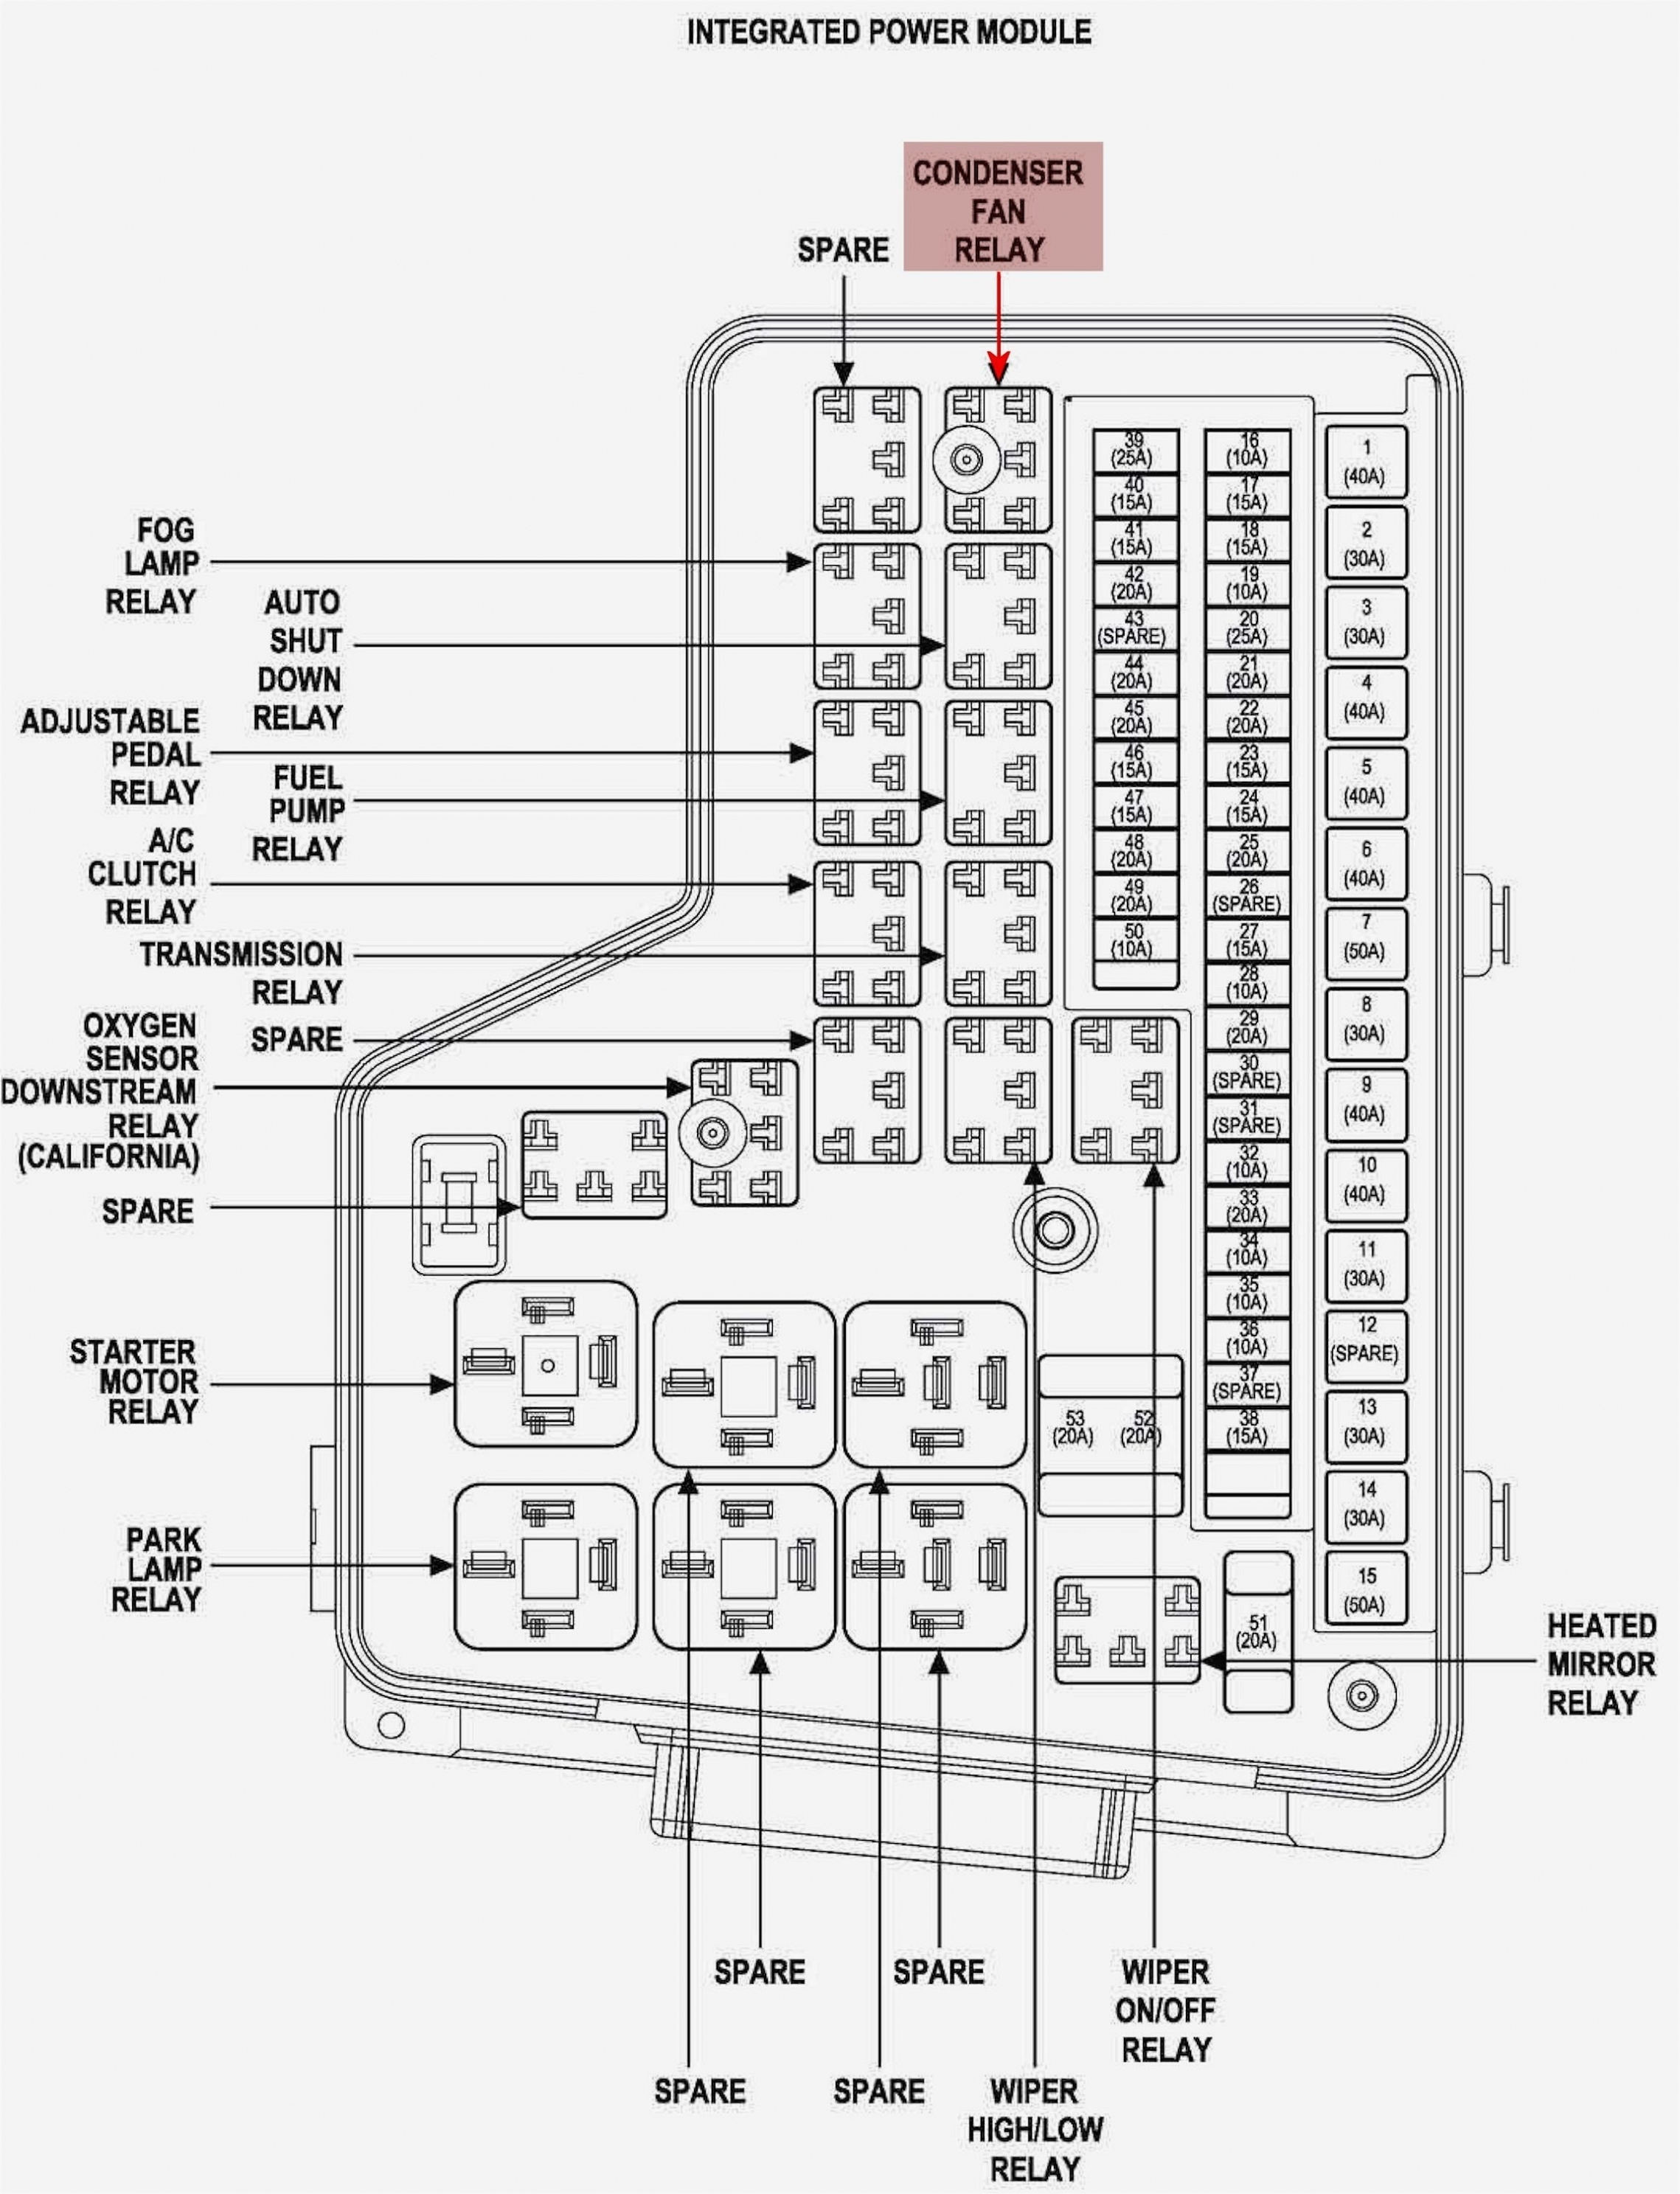 dodge truck fuse diagram wiring diagram 500 free dodge ram wiring diagram 2011 dodge truck wiring diagram #10